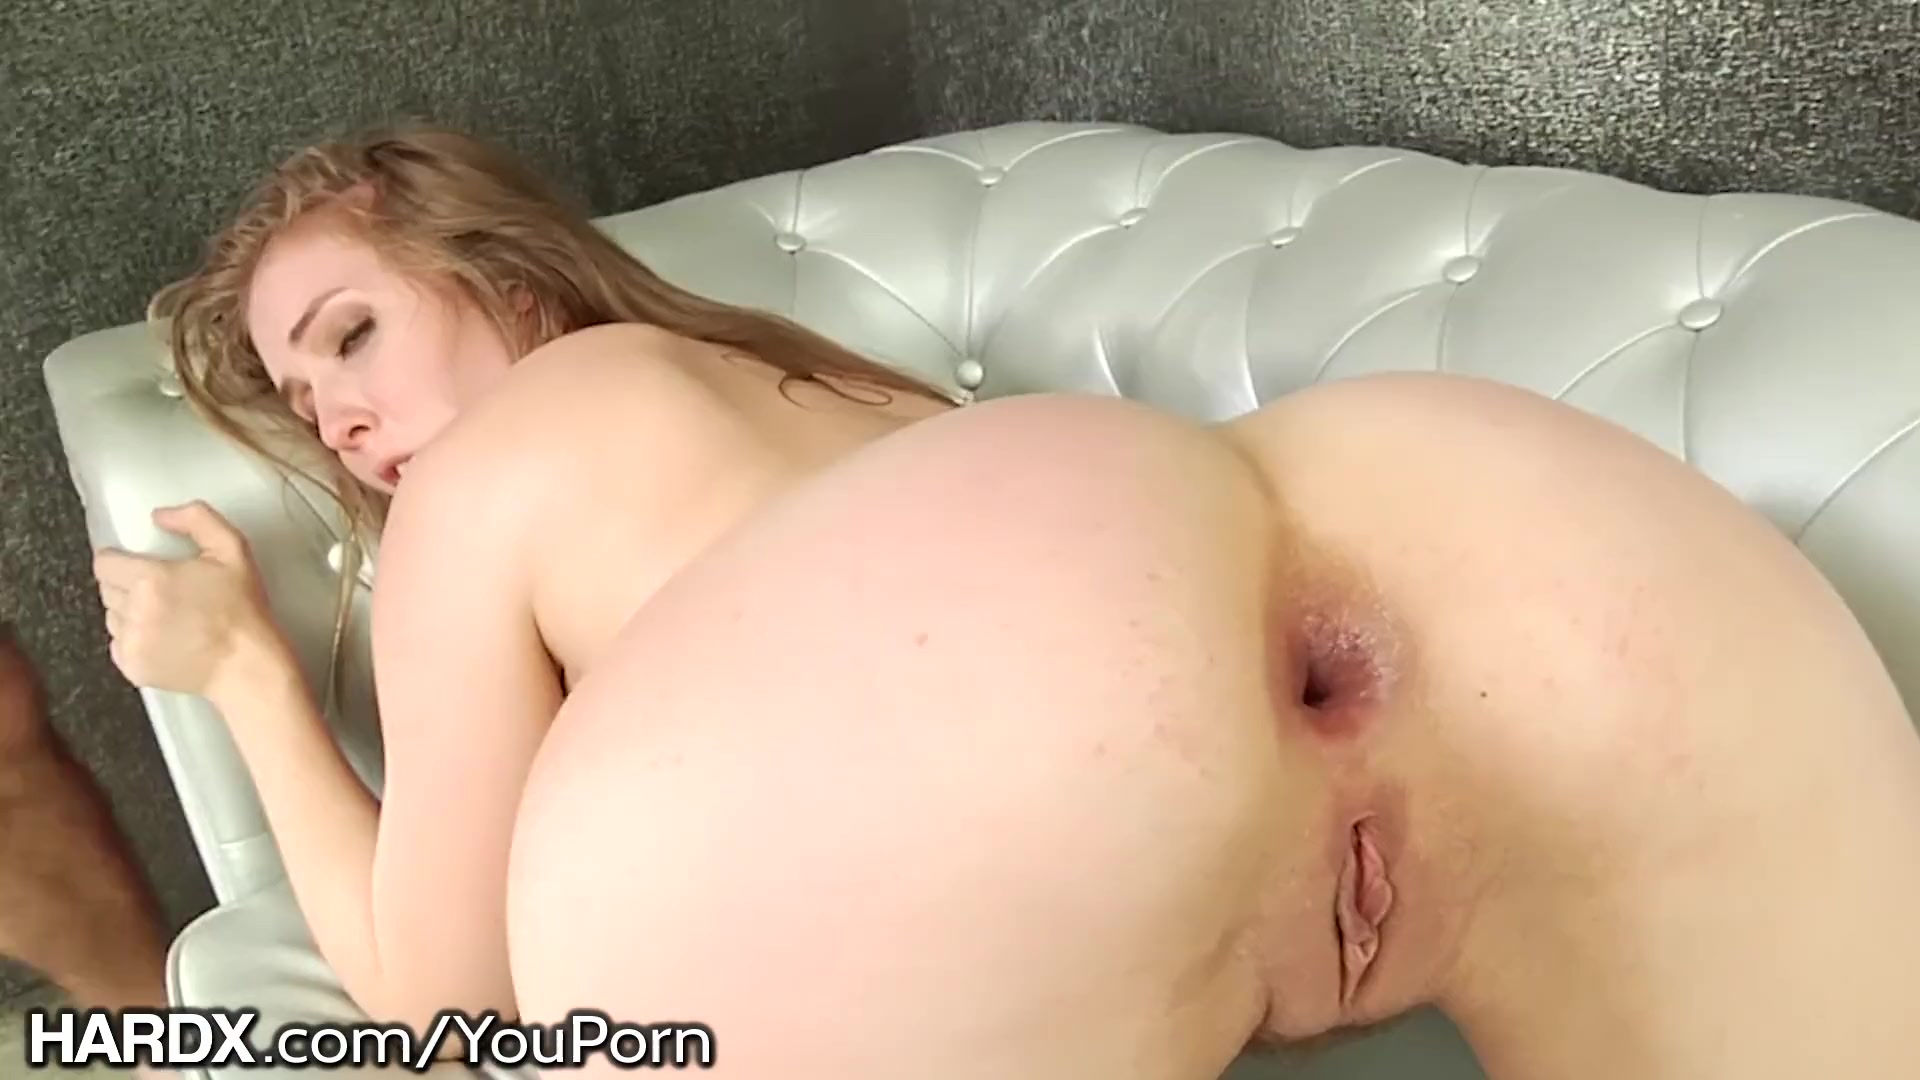 Only anal creampies video collections